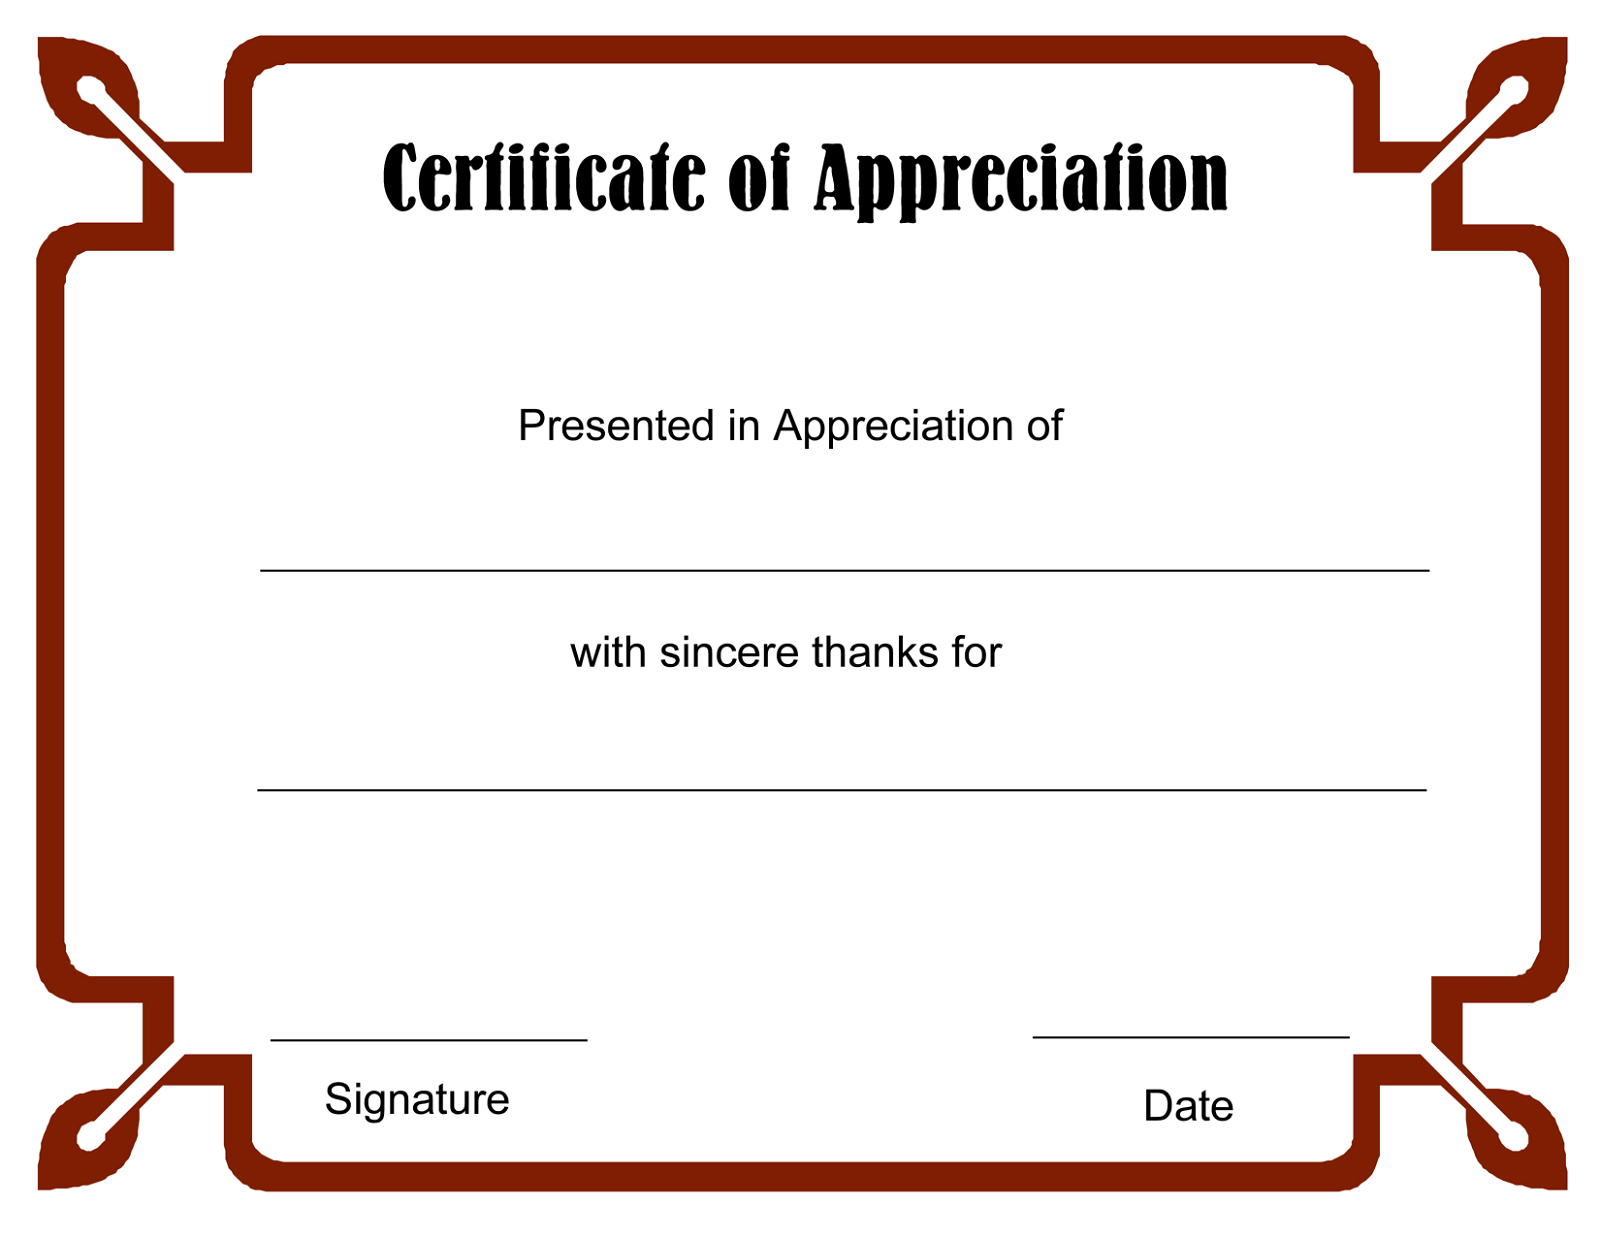 Blank Certificate Templates To Print   Blank Certificate Templates - Free Printable Soccer Certificate Templates